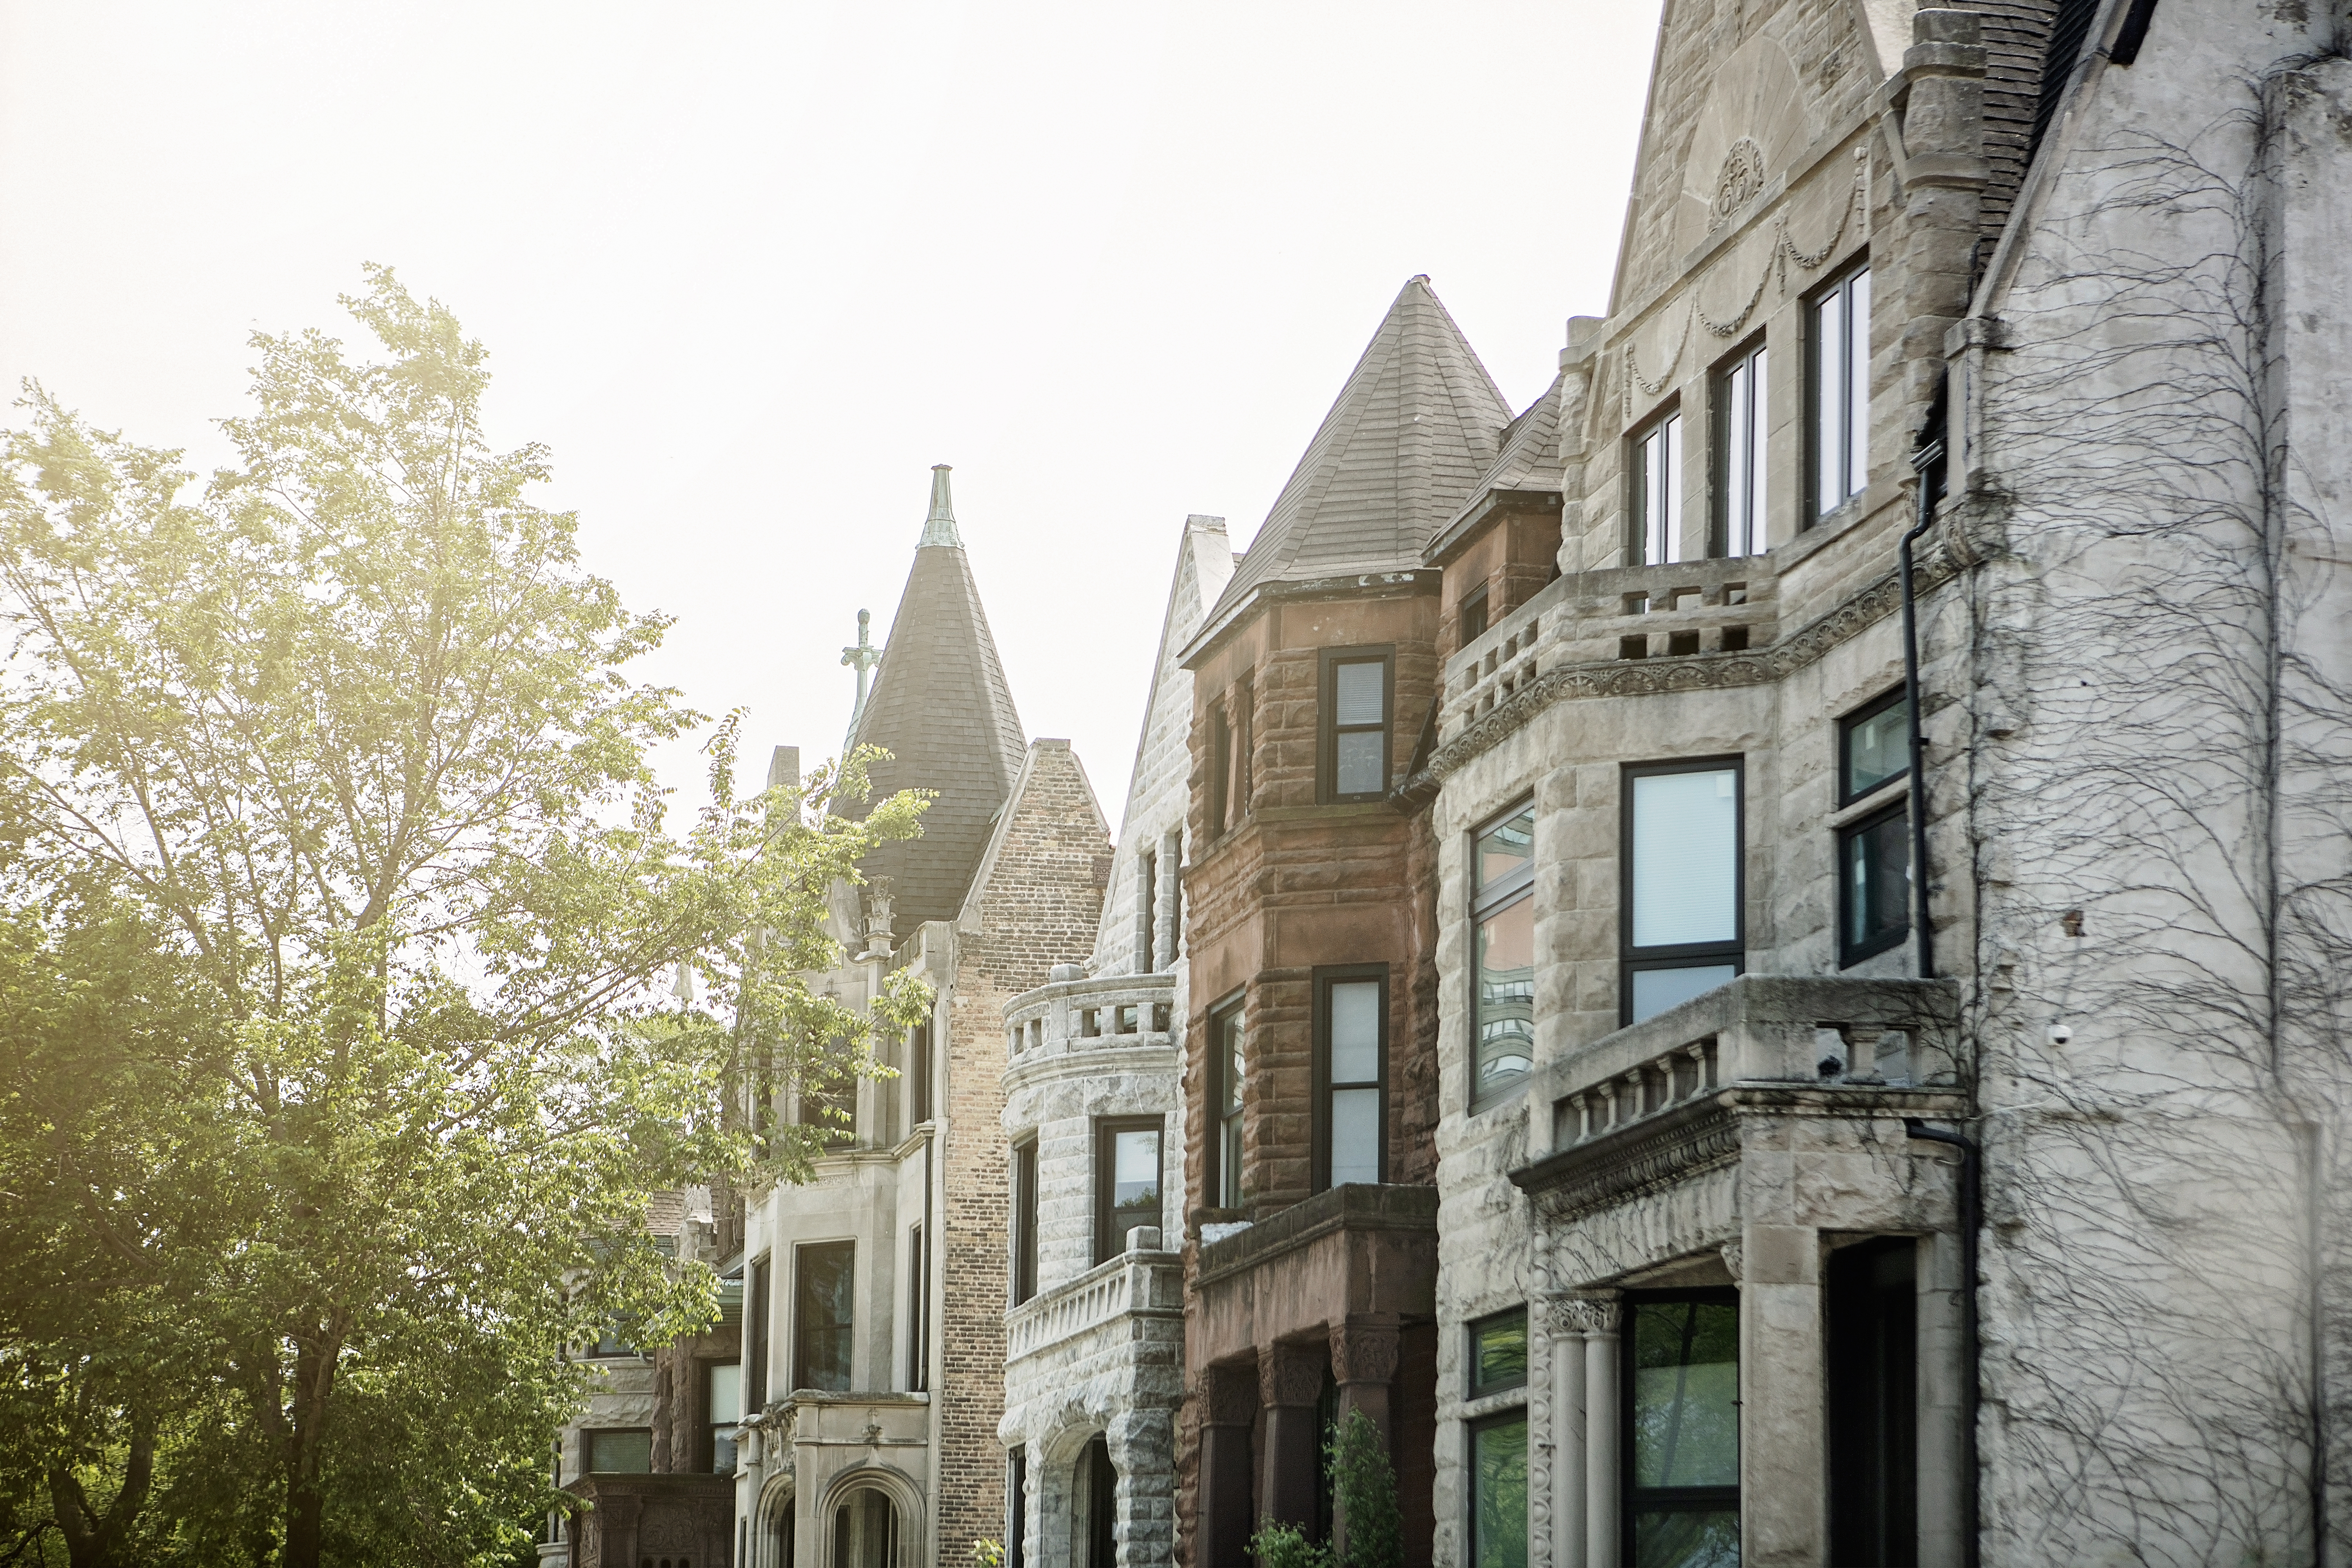 A row of greystone houses in Chicago.